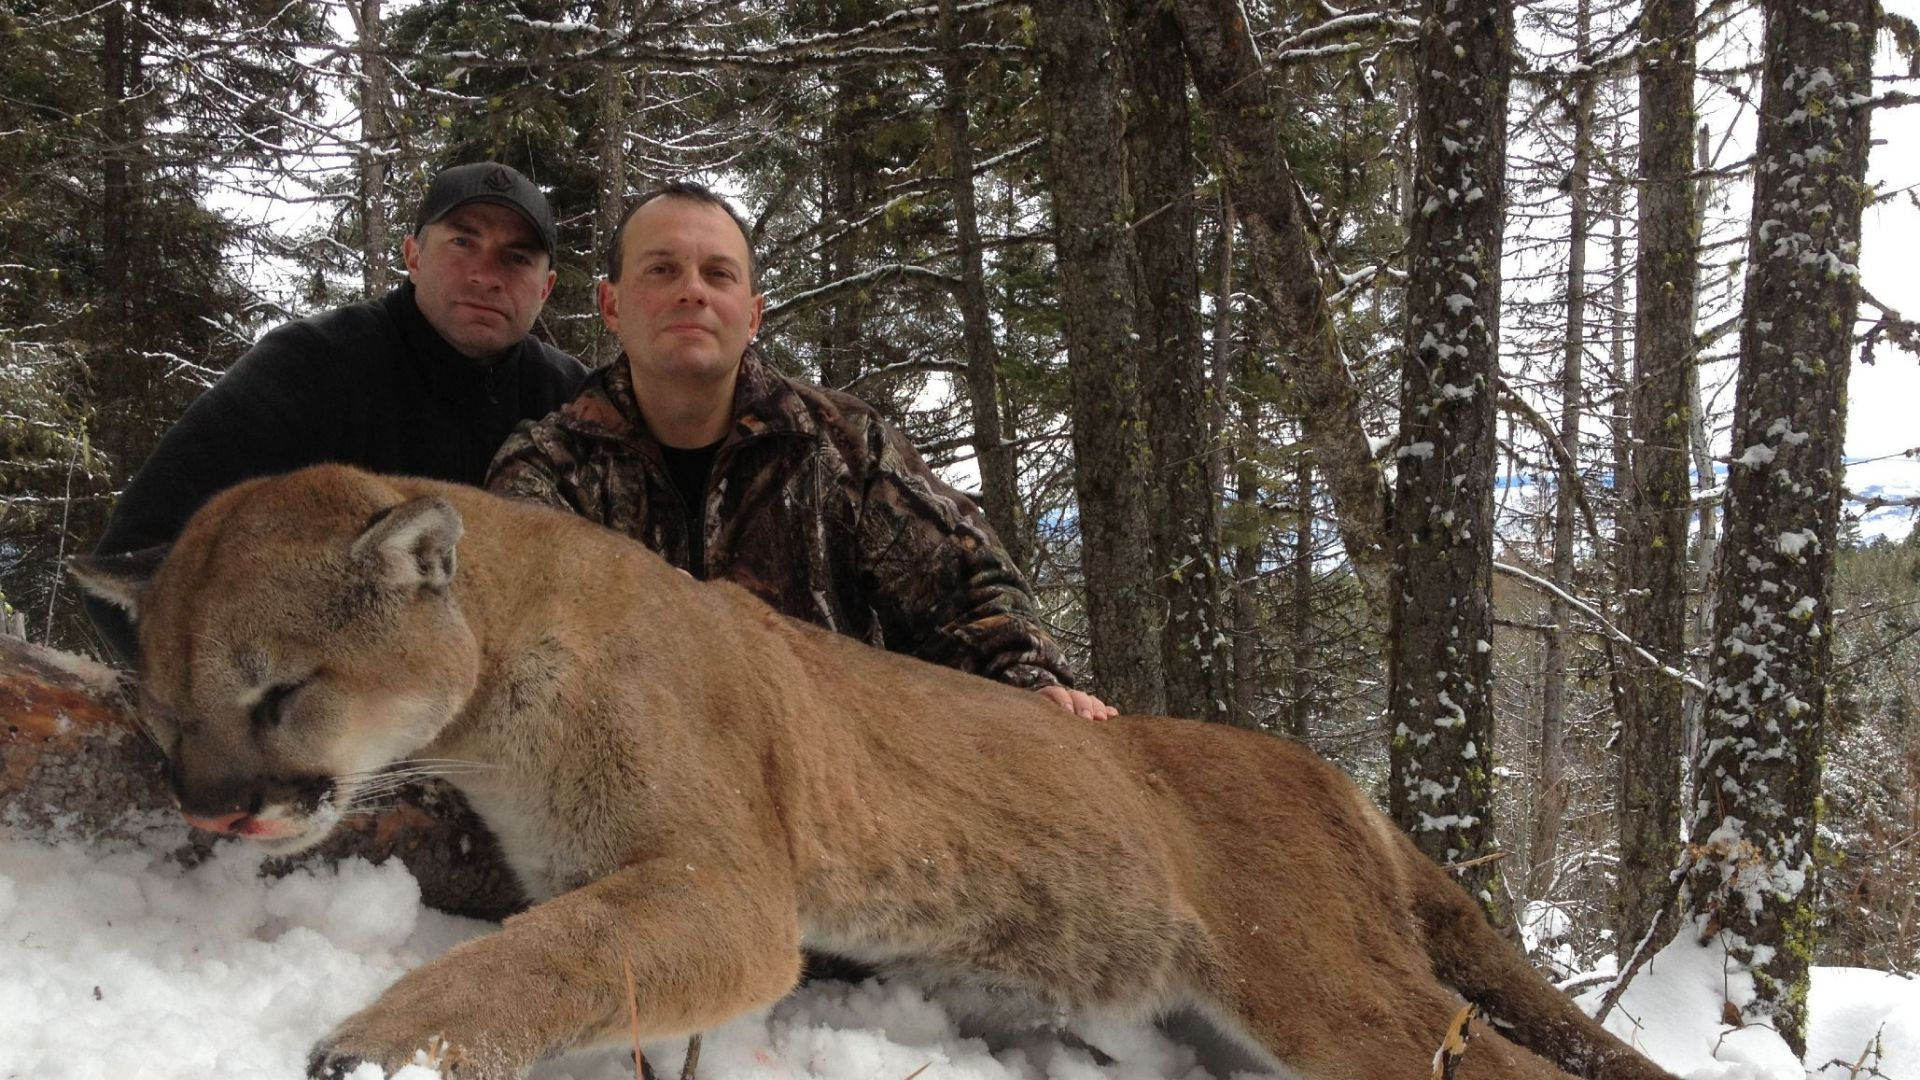 british columbia cougars personals The okanagan valley of british columbia is home to the provinces largest concentration of mule deer and shiras moose during the winter months.